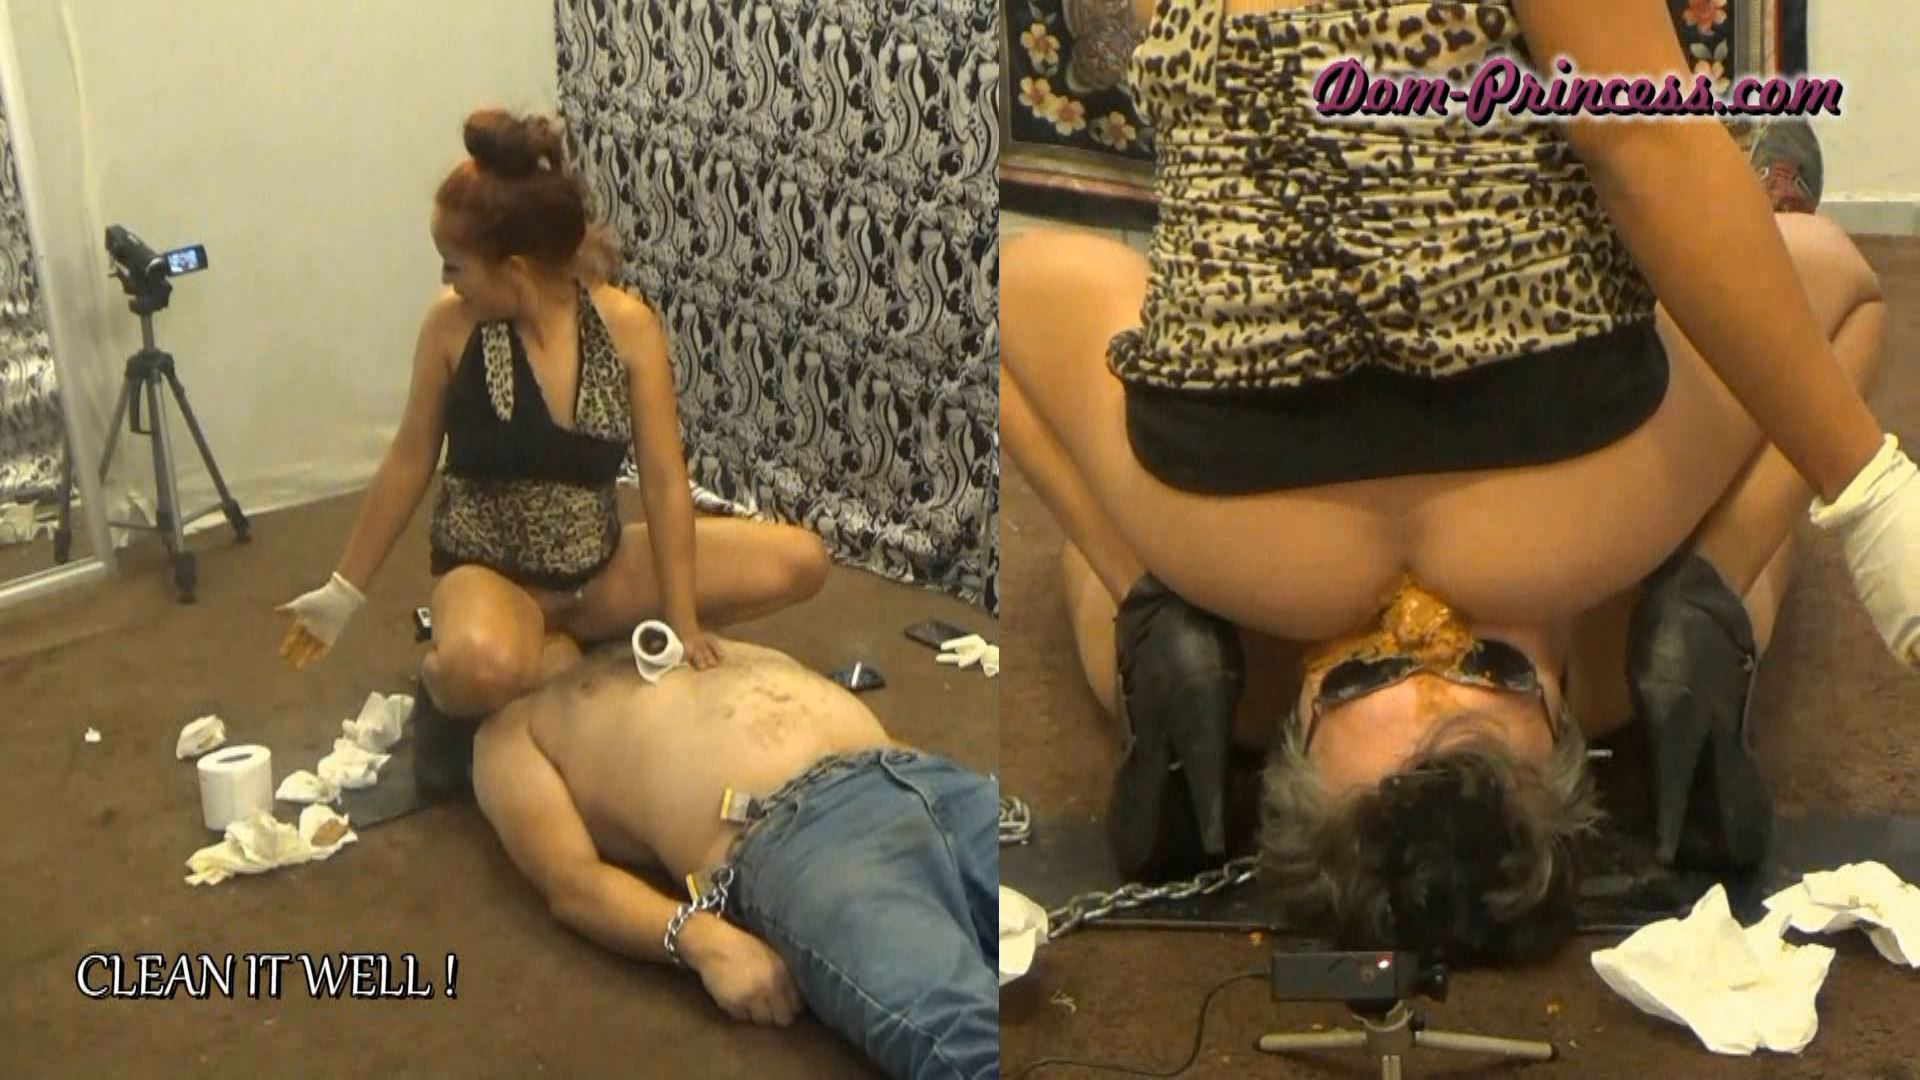 [SCAT-PRINCESS] Quick Sit on your Mouth Snack Part 4 Karina [FULL HD][1080p][WMV]